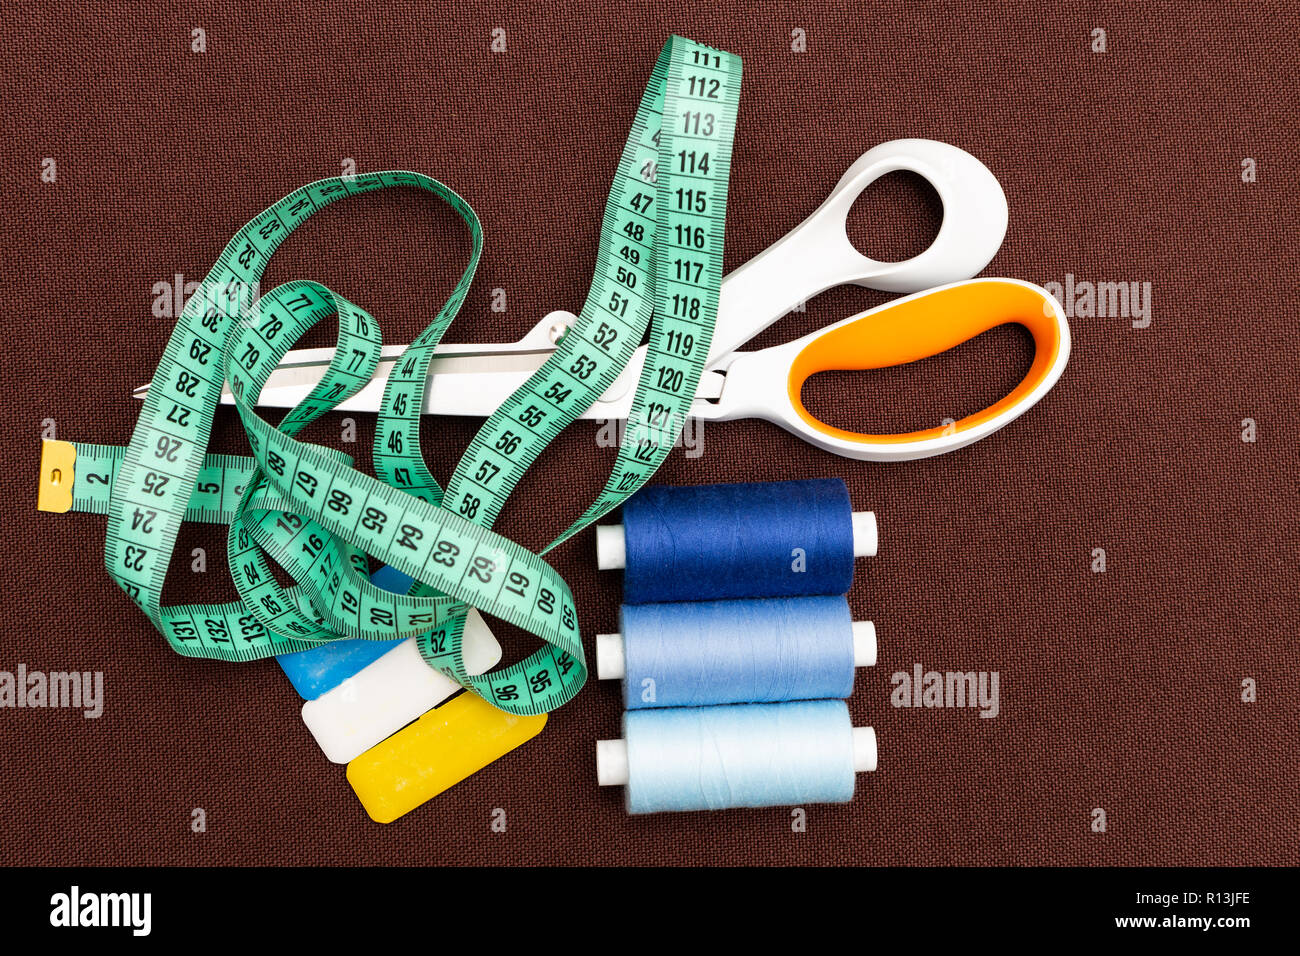 Equipment for sewing such as scissors, thread, chalk and measuring tape on brown fabric background - Stock Image